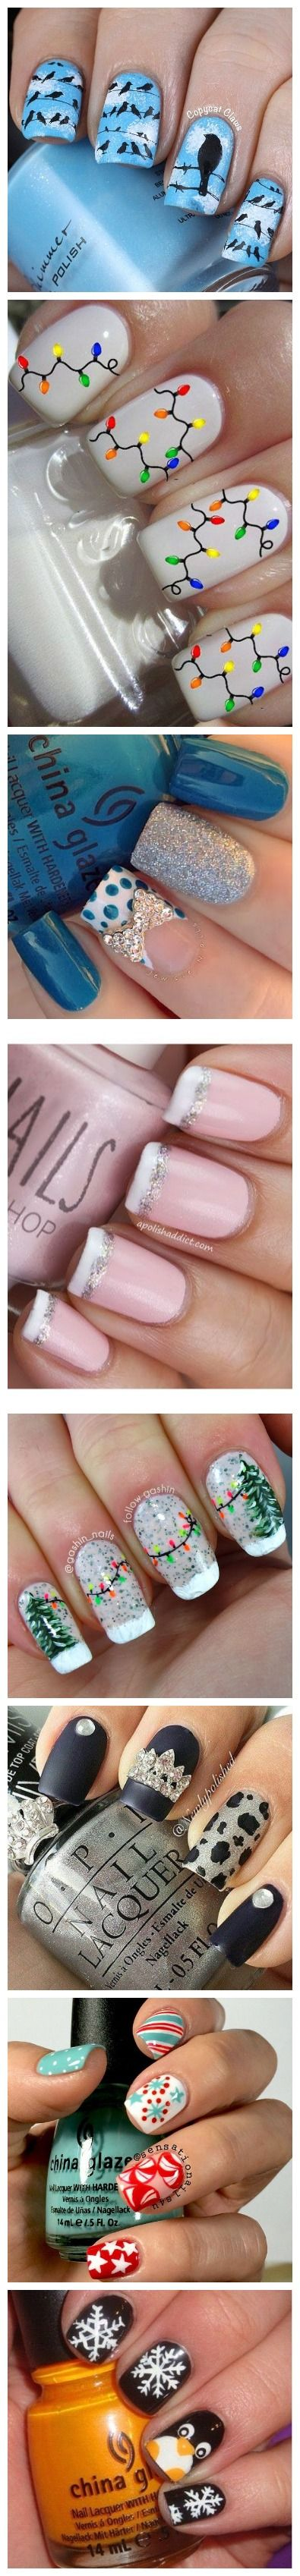 Nail Art Images https://www.facebook.com/shorthaircutstyles/posts/1762375747386198